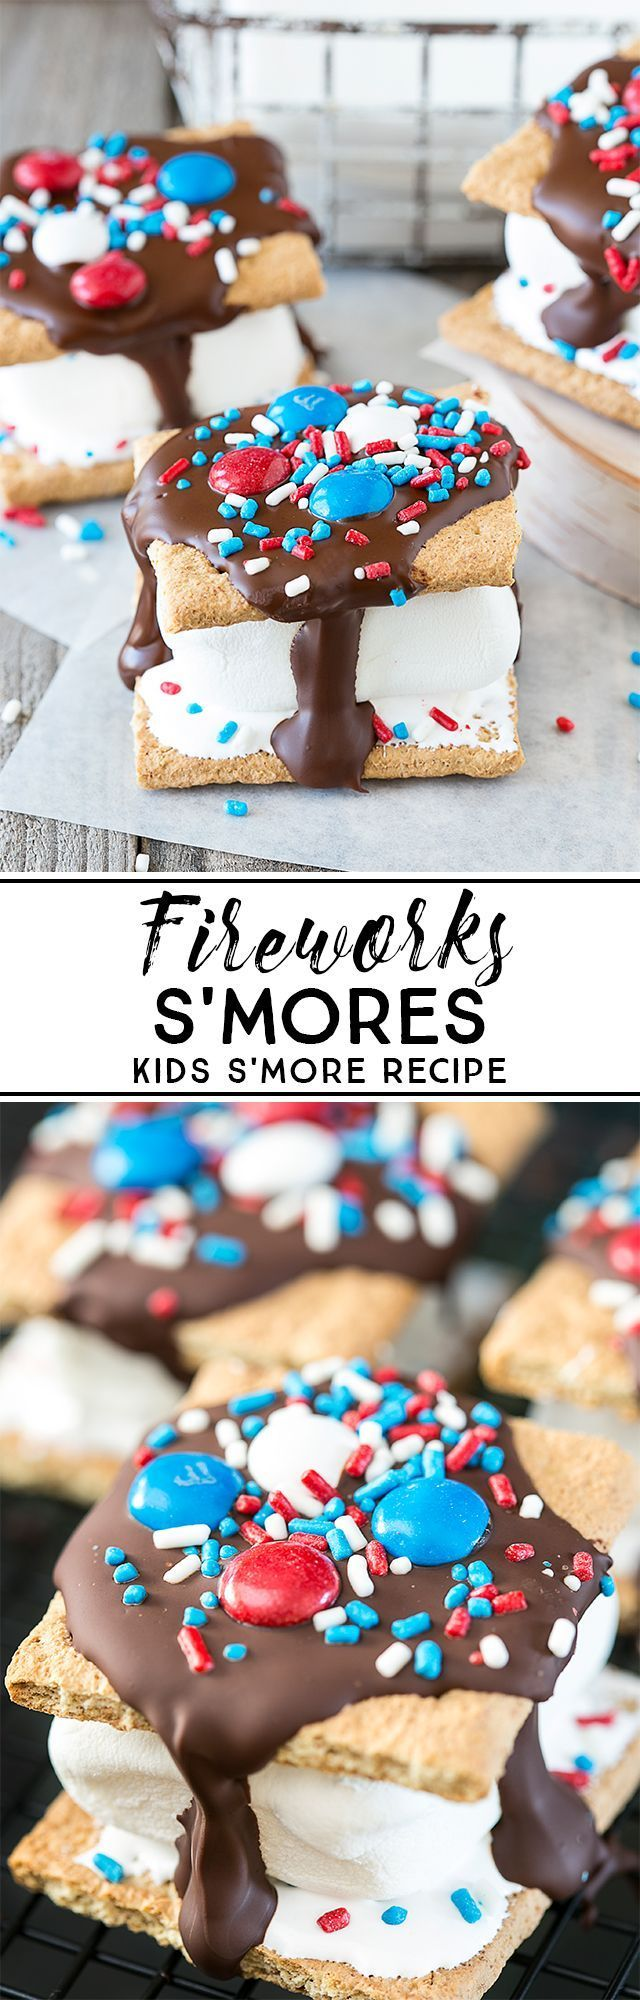 Need a kids s'more recipe? These Fireworks S'mores will do the trick this July 4th. They're packed with flavor -- and sprinkles. livelaughrowe.com